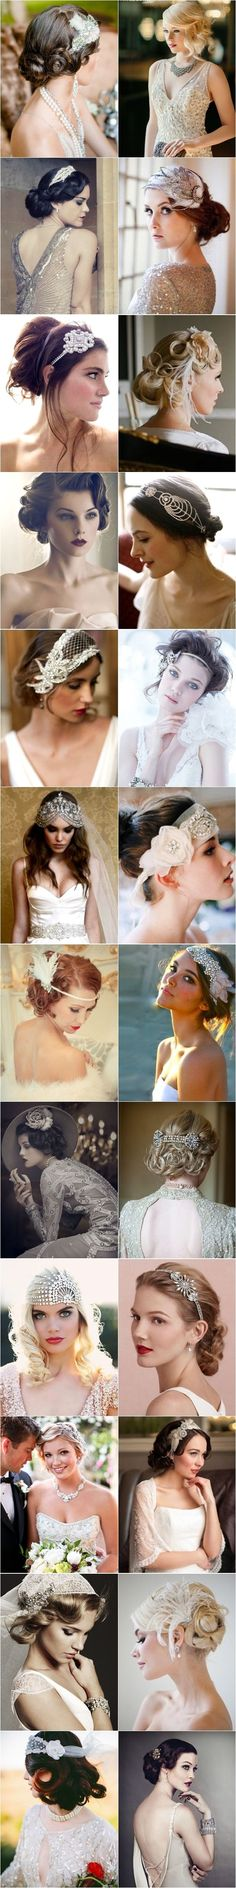 1920s Gatsby Glam Inspired Hairstyles for a romantic look on your vintage inspired big day